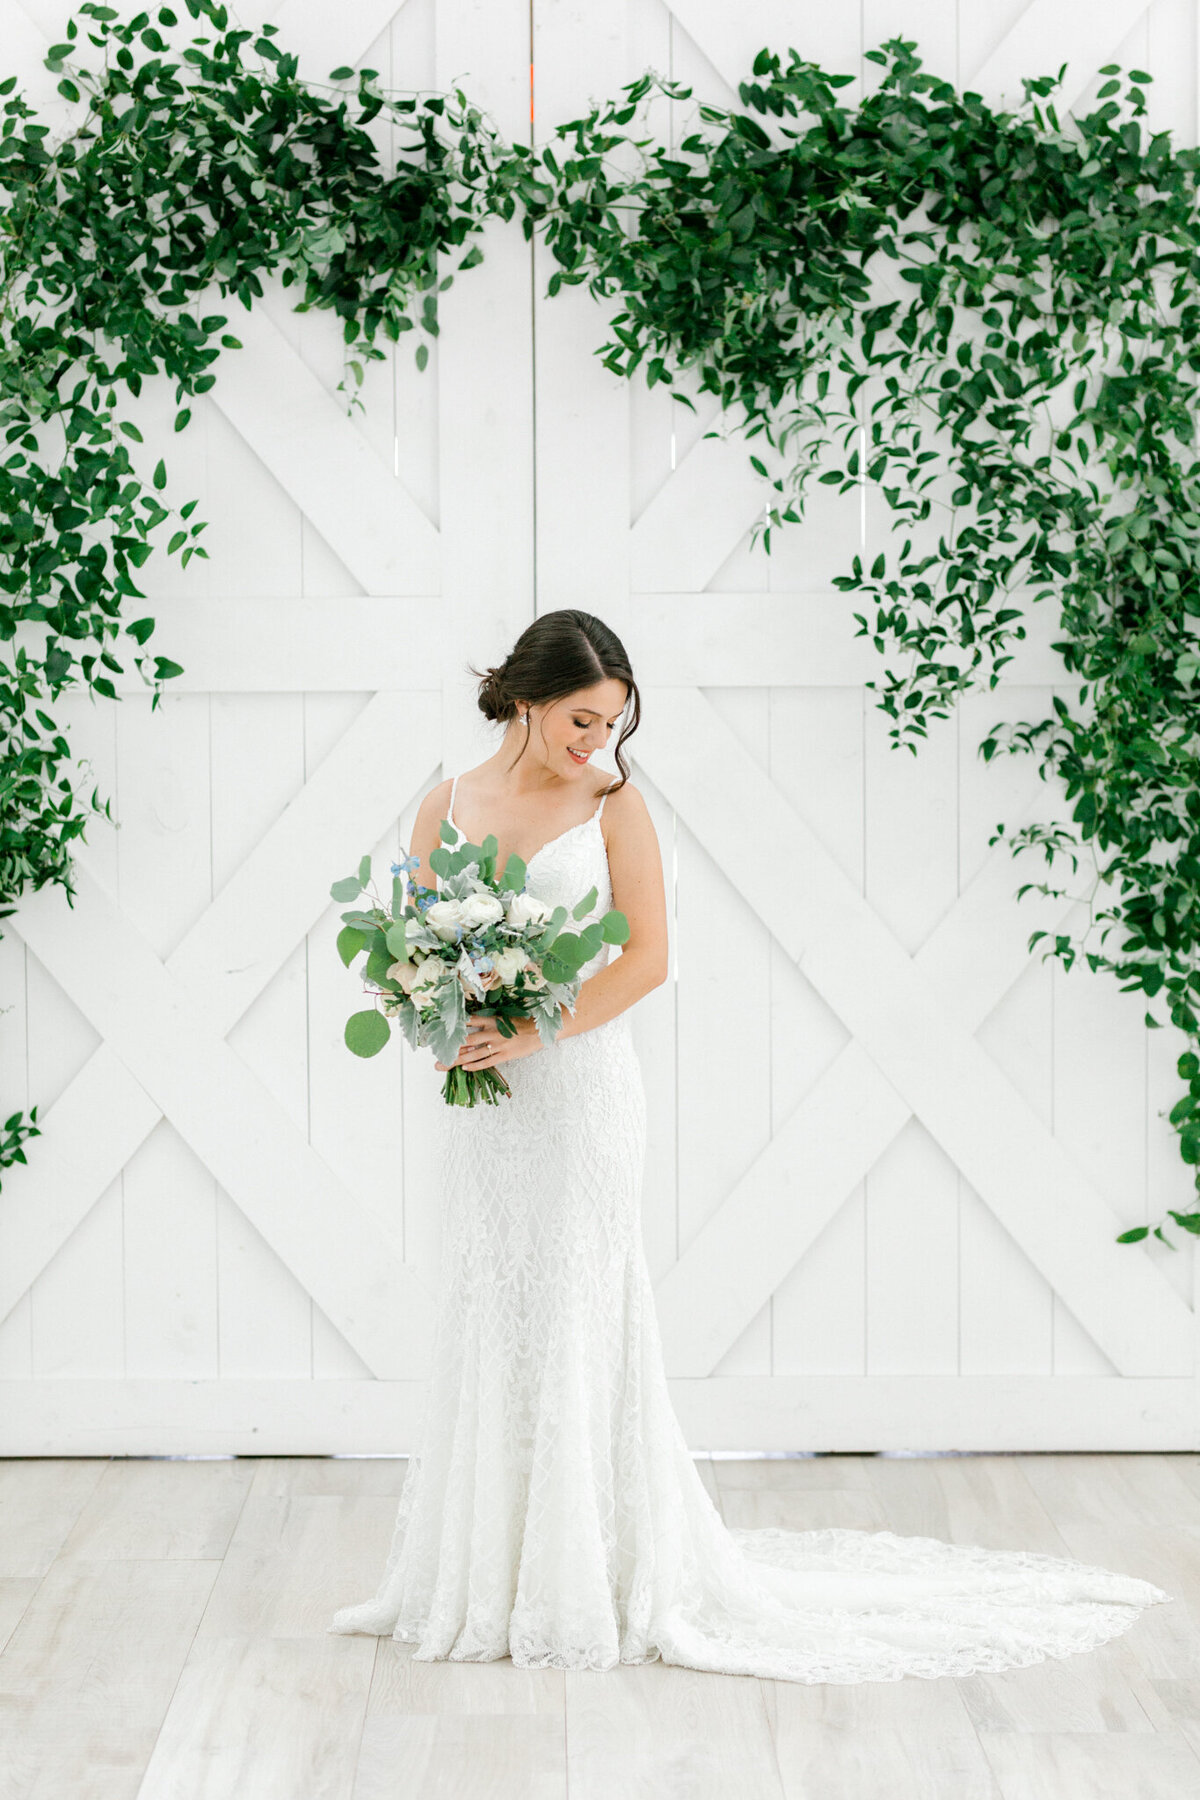 Anna & Billy's Wedding at The Nest at Ruth Farms | Dallas Wedding Photographer | Sami Kathryn Photography-120